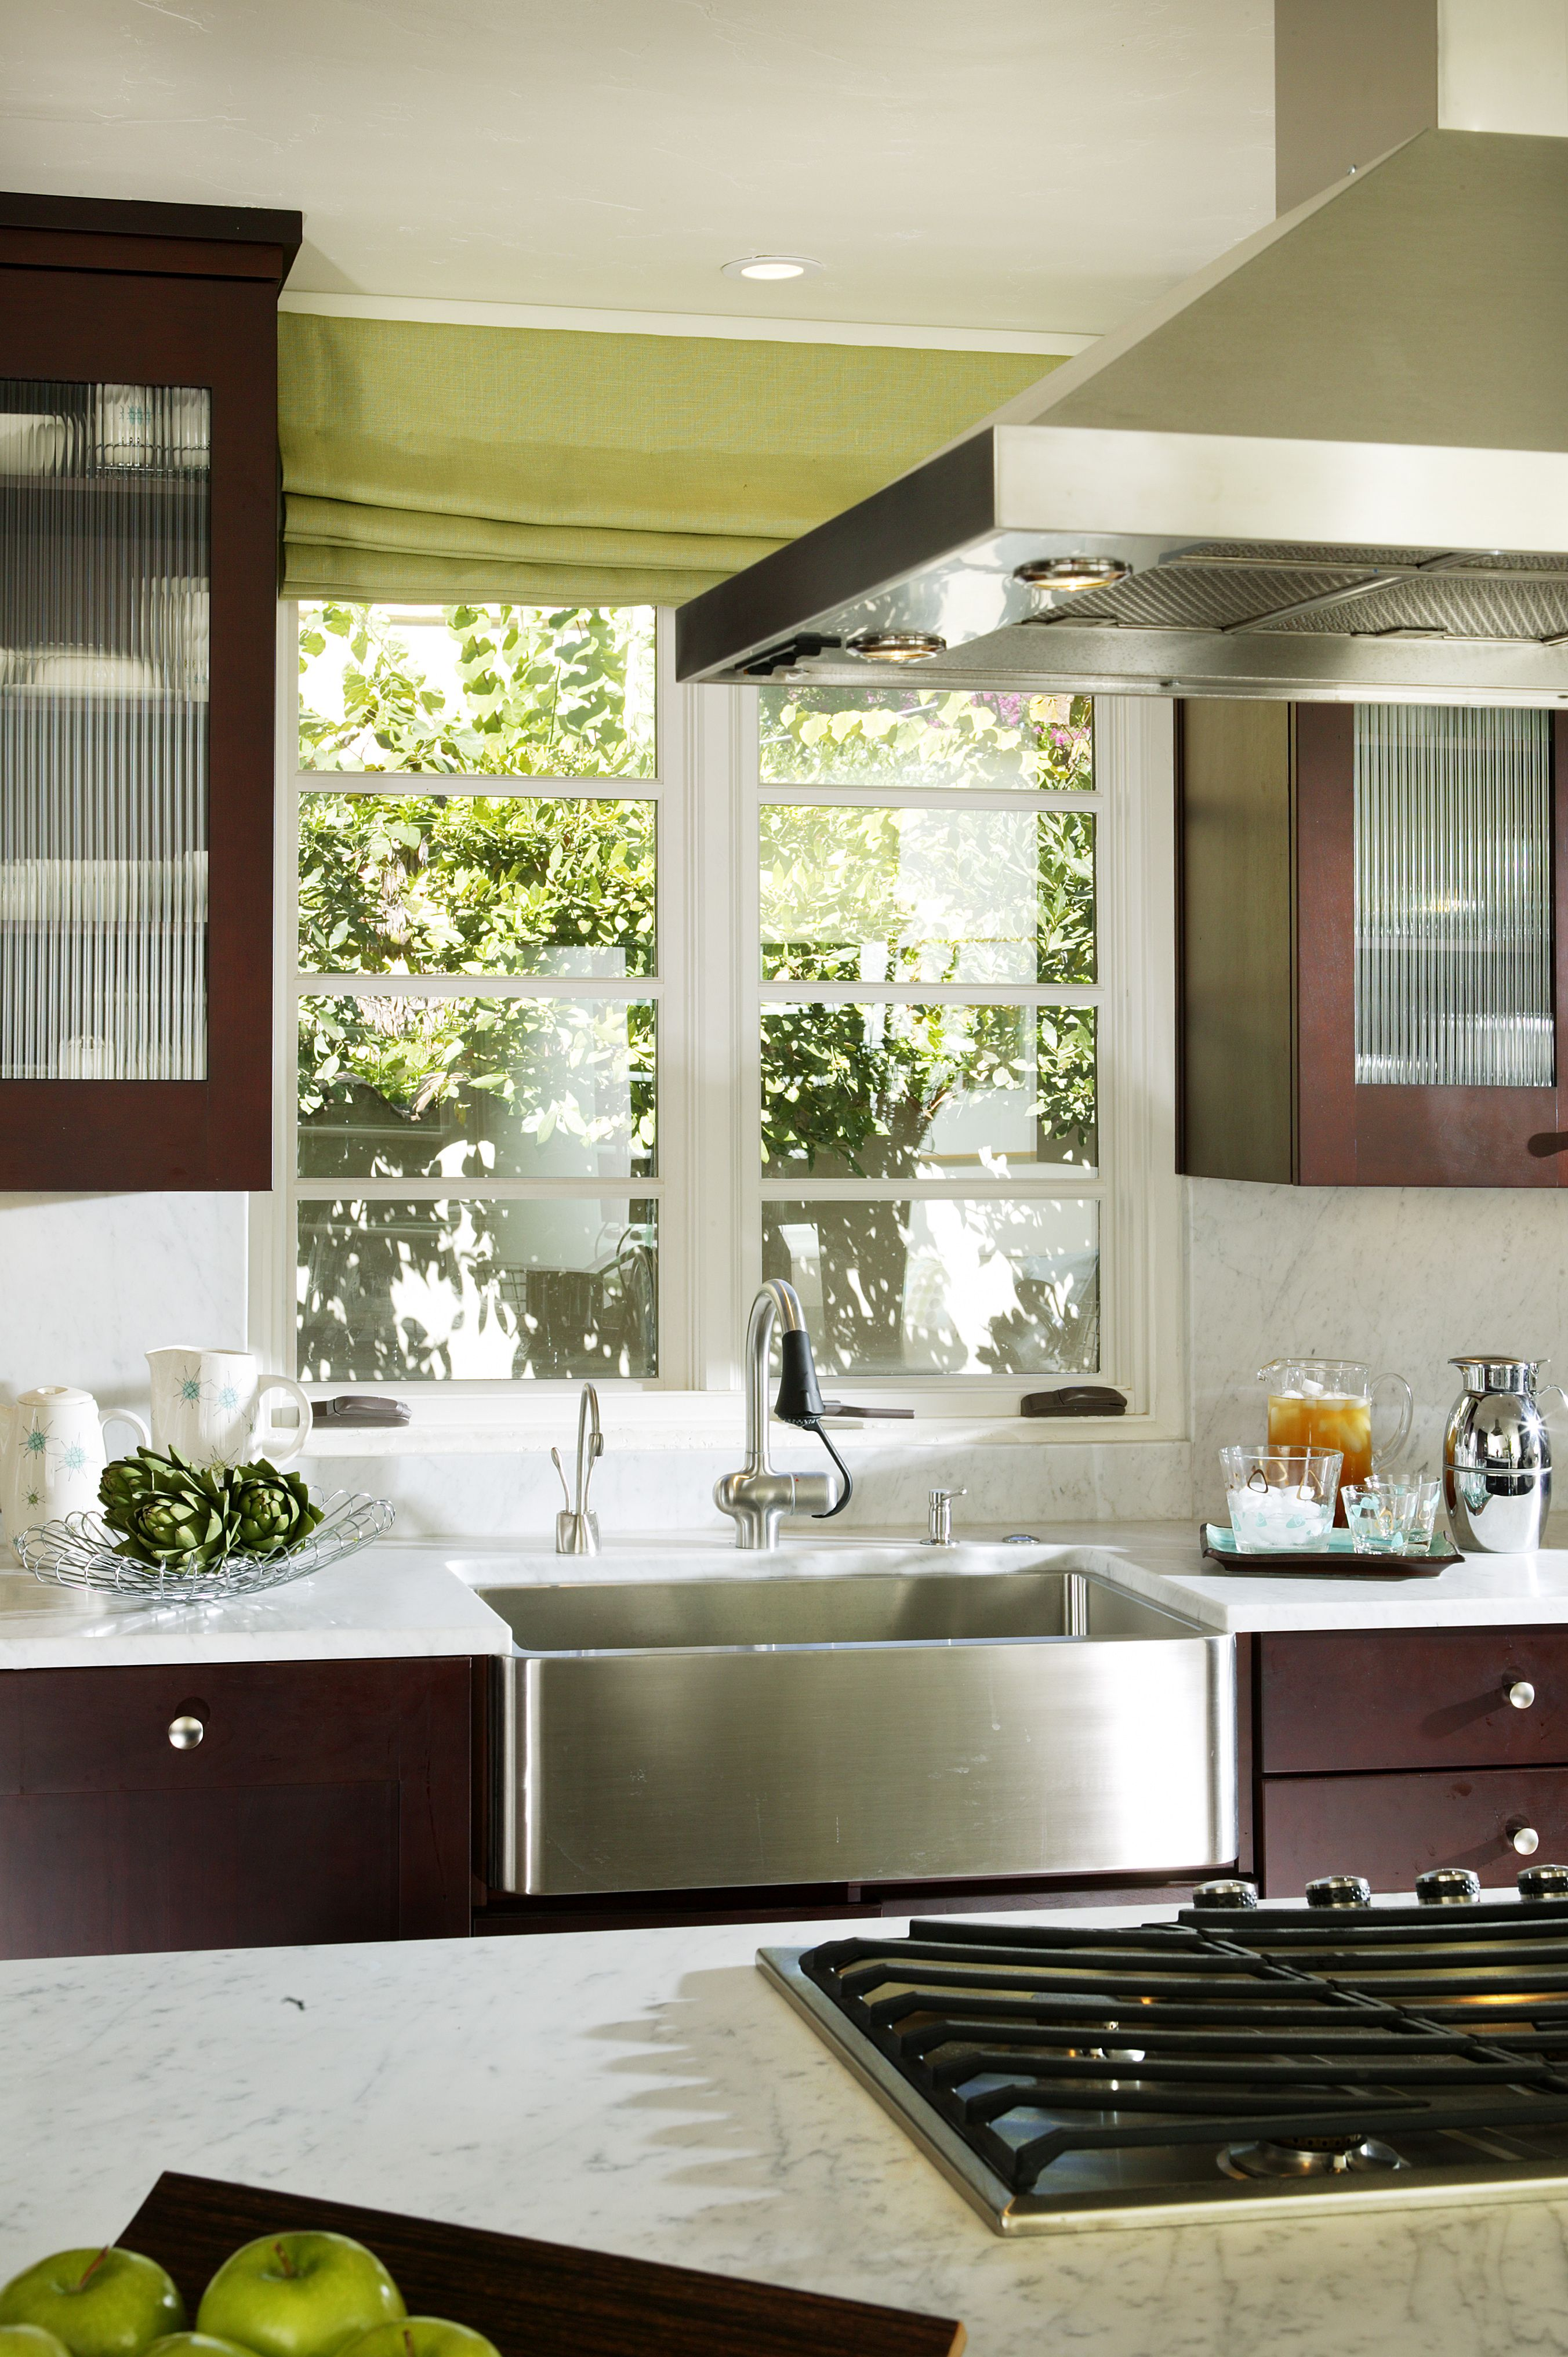 Beautiful stainless steel farmhouse sink. Cuisine